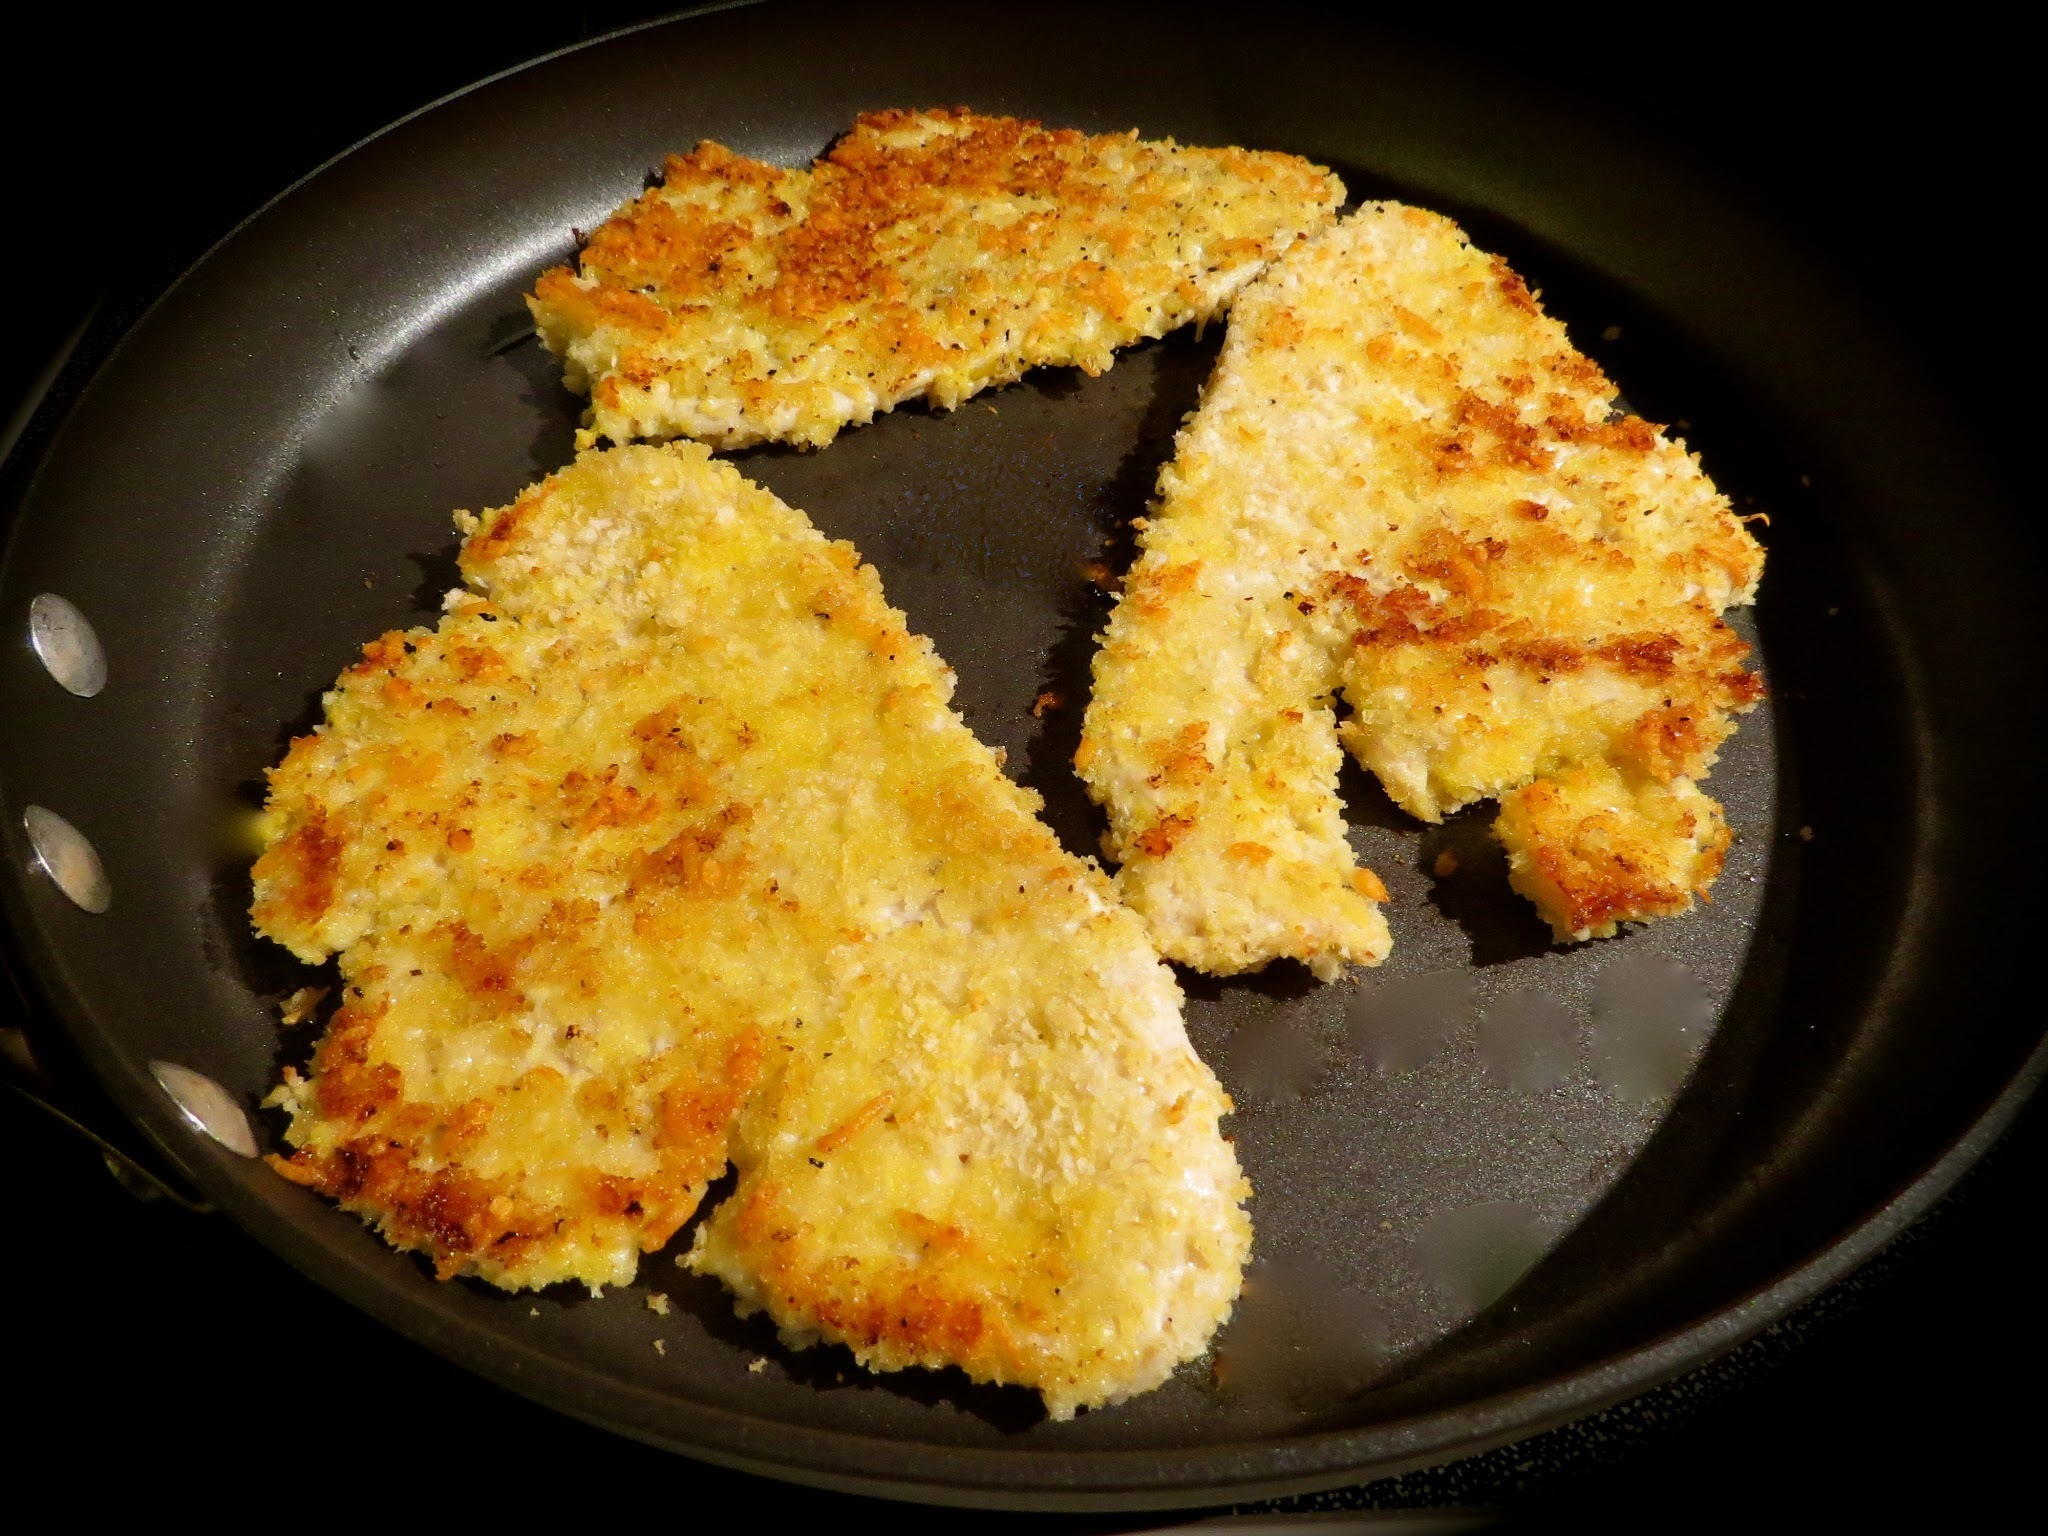 Rachael Ray's Parmesan Crusted Turkey Cutlets